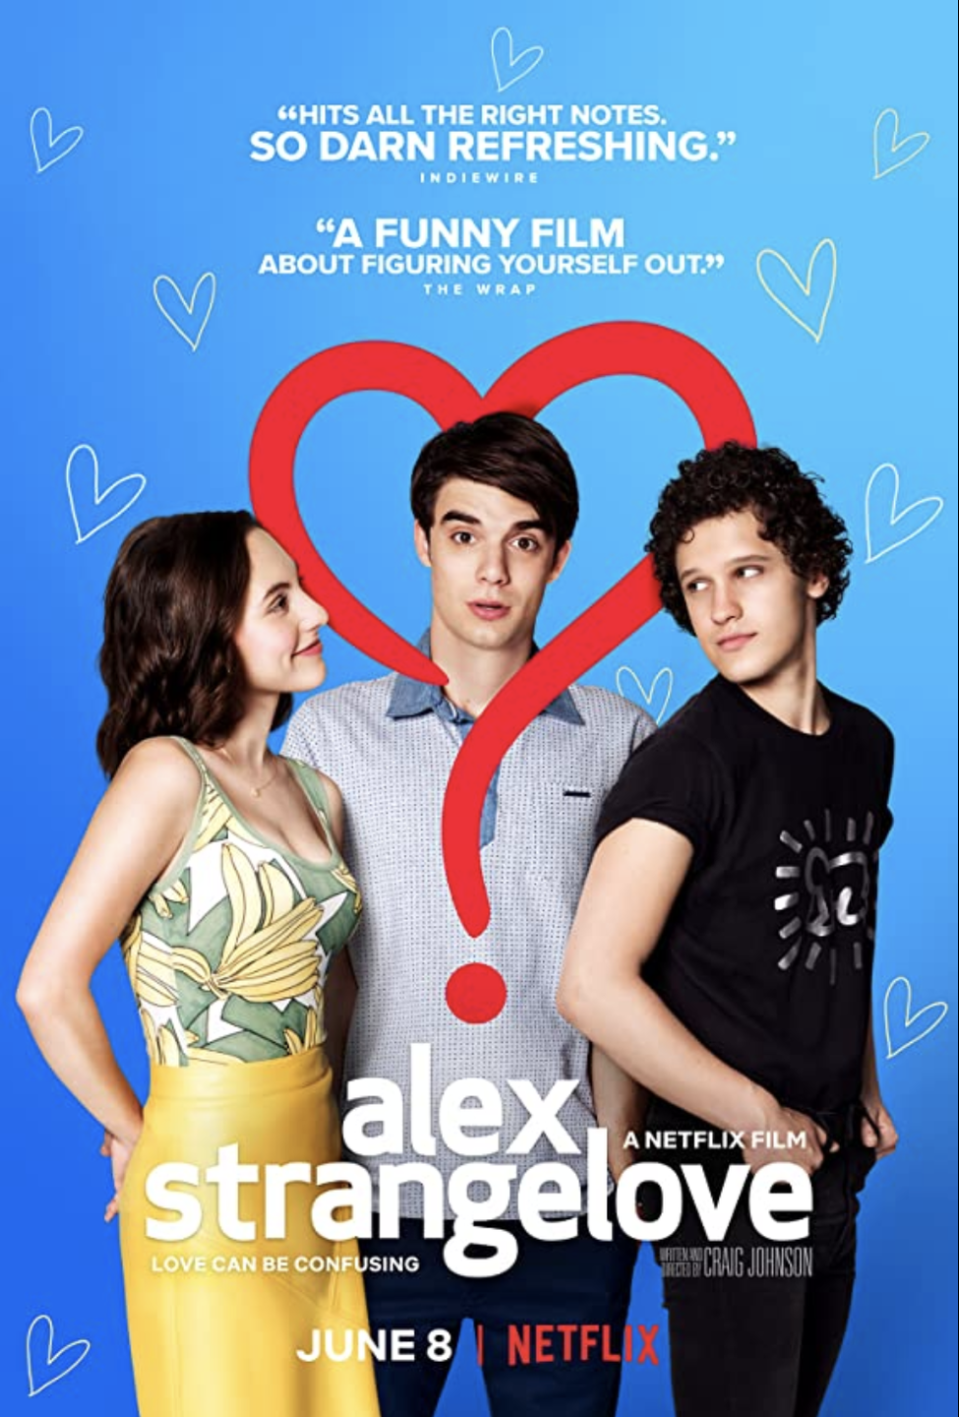 "<p>High school senior Alex is happily dating his girlfriend Claire. But when he meets handsome Elliot, Alex realizes his sexual identity may not be as clear as he thought. </p><p><a class=""link rapid-noclick-resp"" href=""https://www.netflix.com/search?q=Alex+Strangelove&jbv=80168189"" rel=""nofollow noopener"" target=""_blank"" data-ylk=""slk:STREAM NOW"">STREAM NOW</a></p>"